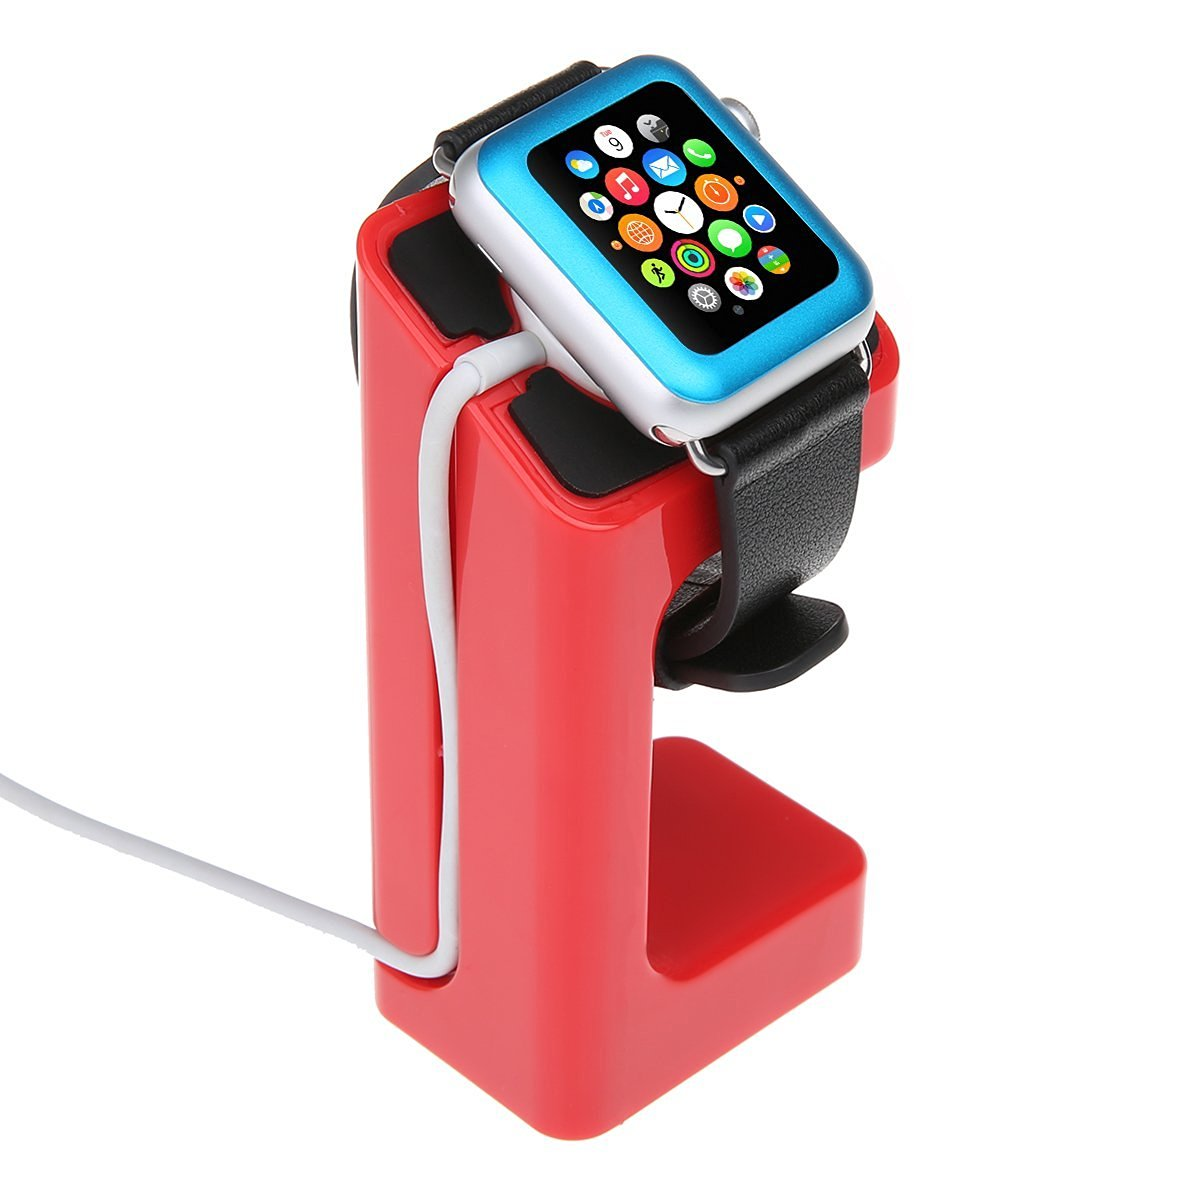 Apple Watch Stand,Apple Watch Charging Stand Bracket Docking Station Stock Cradle Holder for Apple Watch 38mm 42mm (Red)